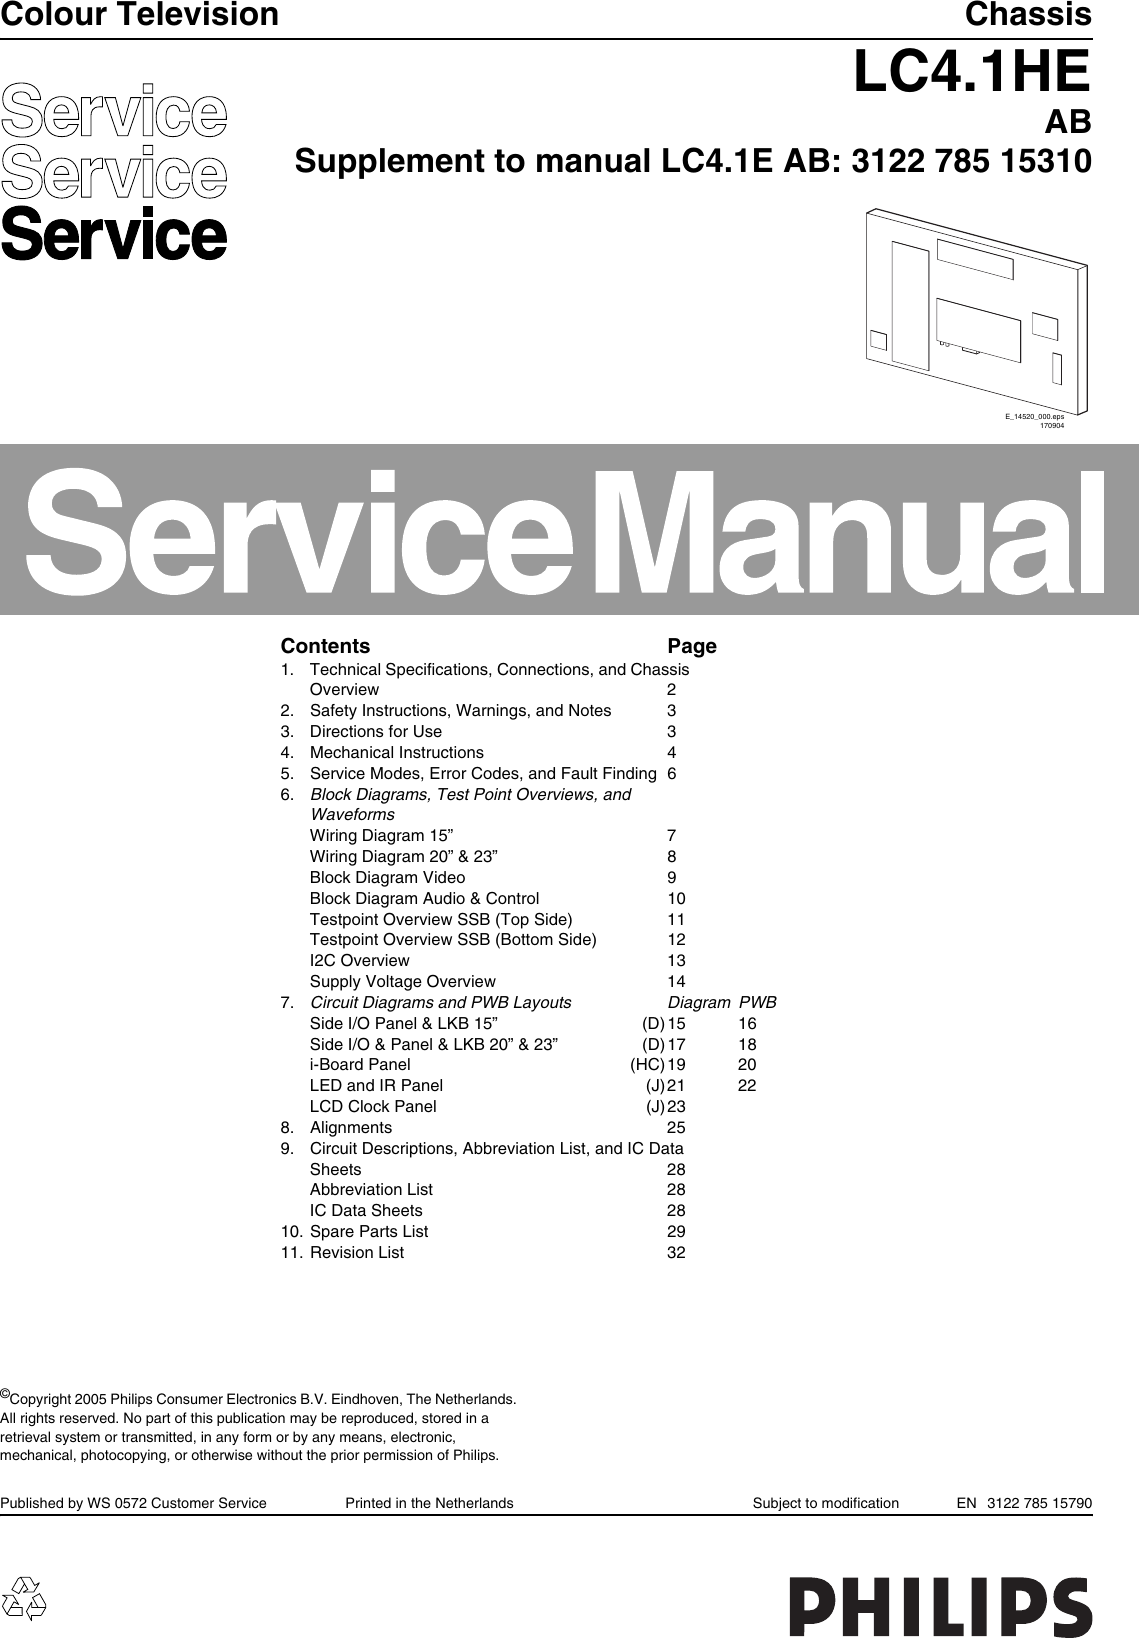 Philips Chassis Lc41he Ab Service Manual S Manualscom Tv Ch Electro Help 32 Inch Lcd Power Supply Smps Schematic